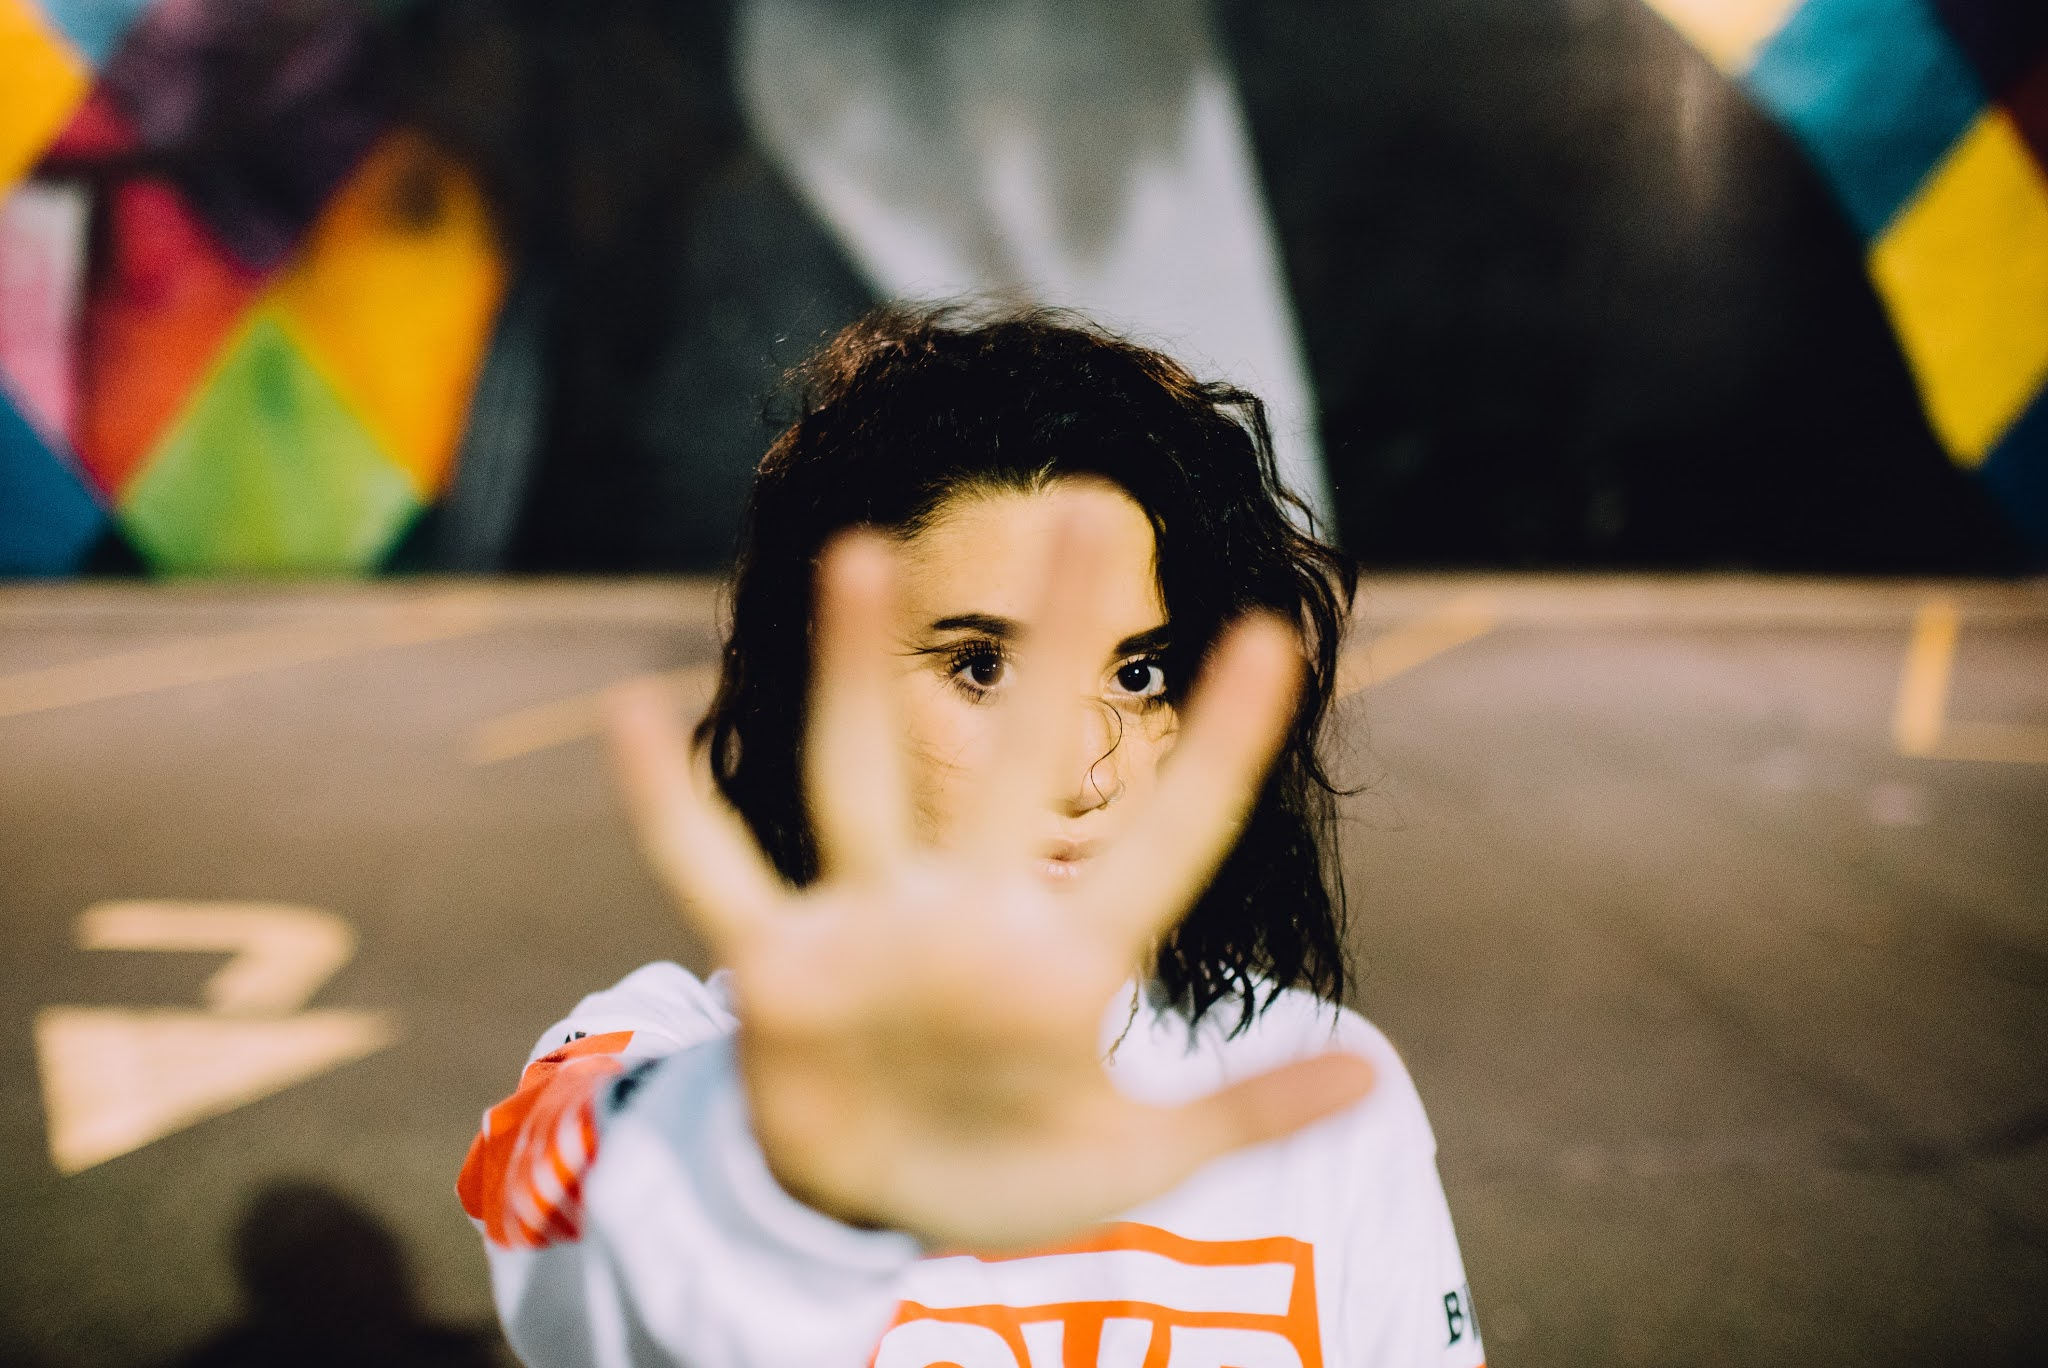 Girl with stop hand gesture